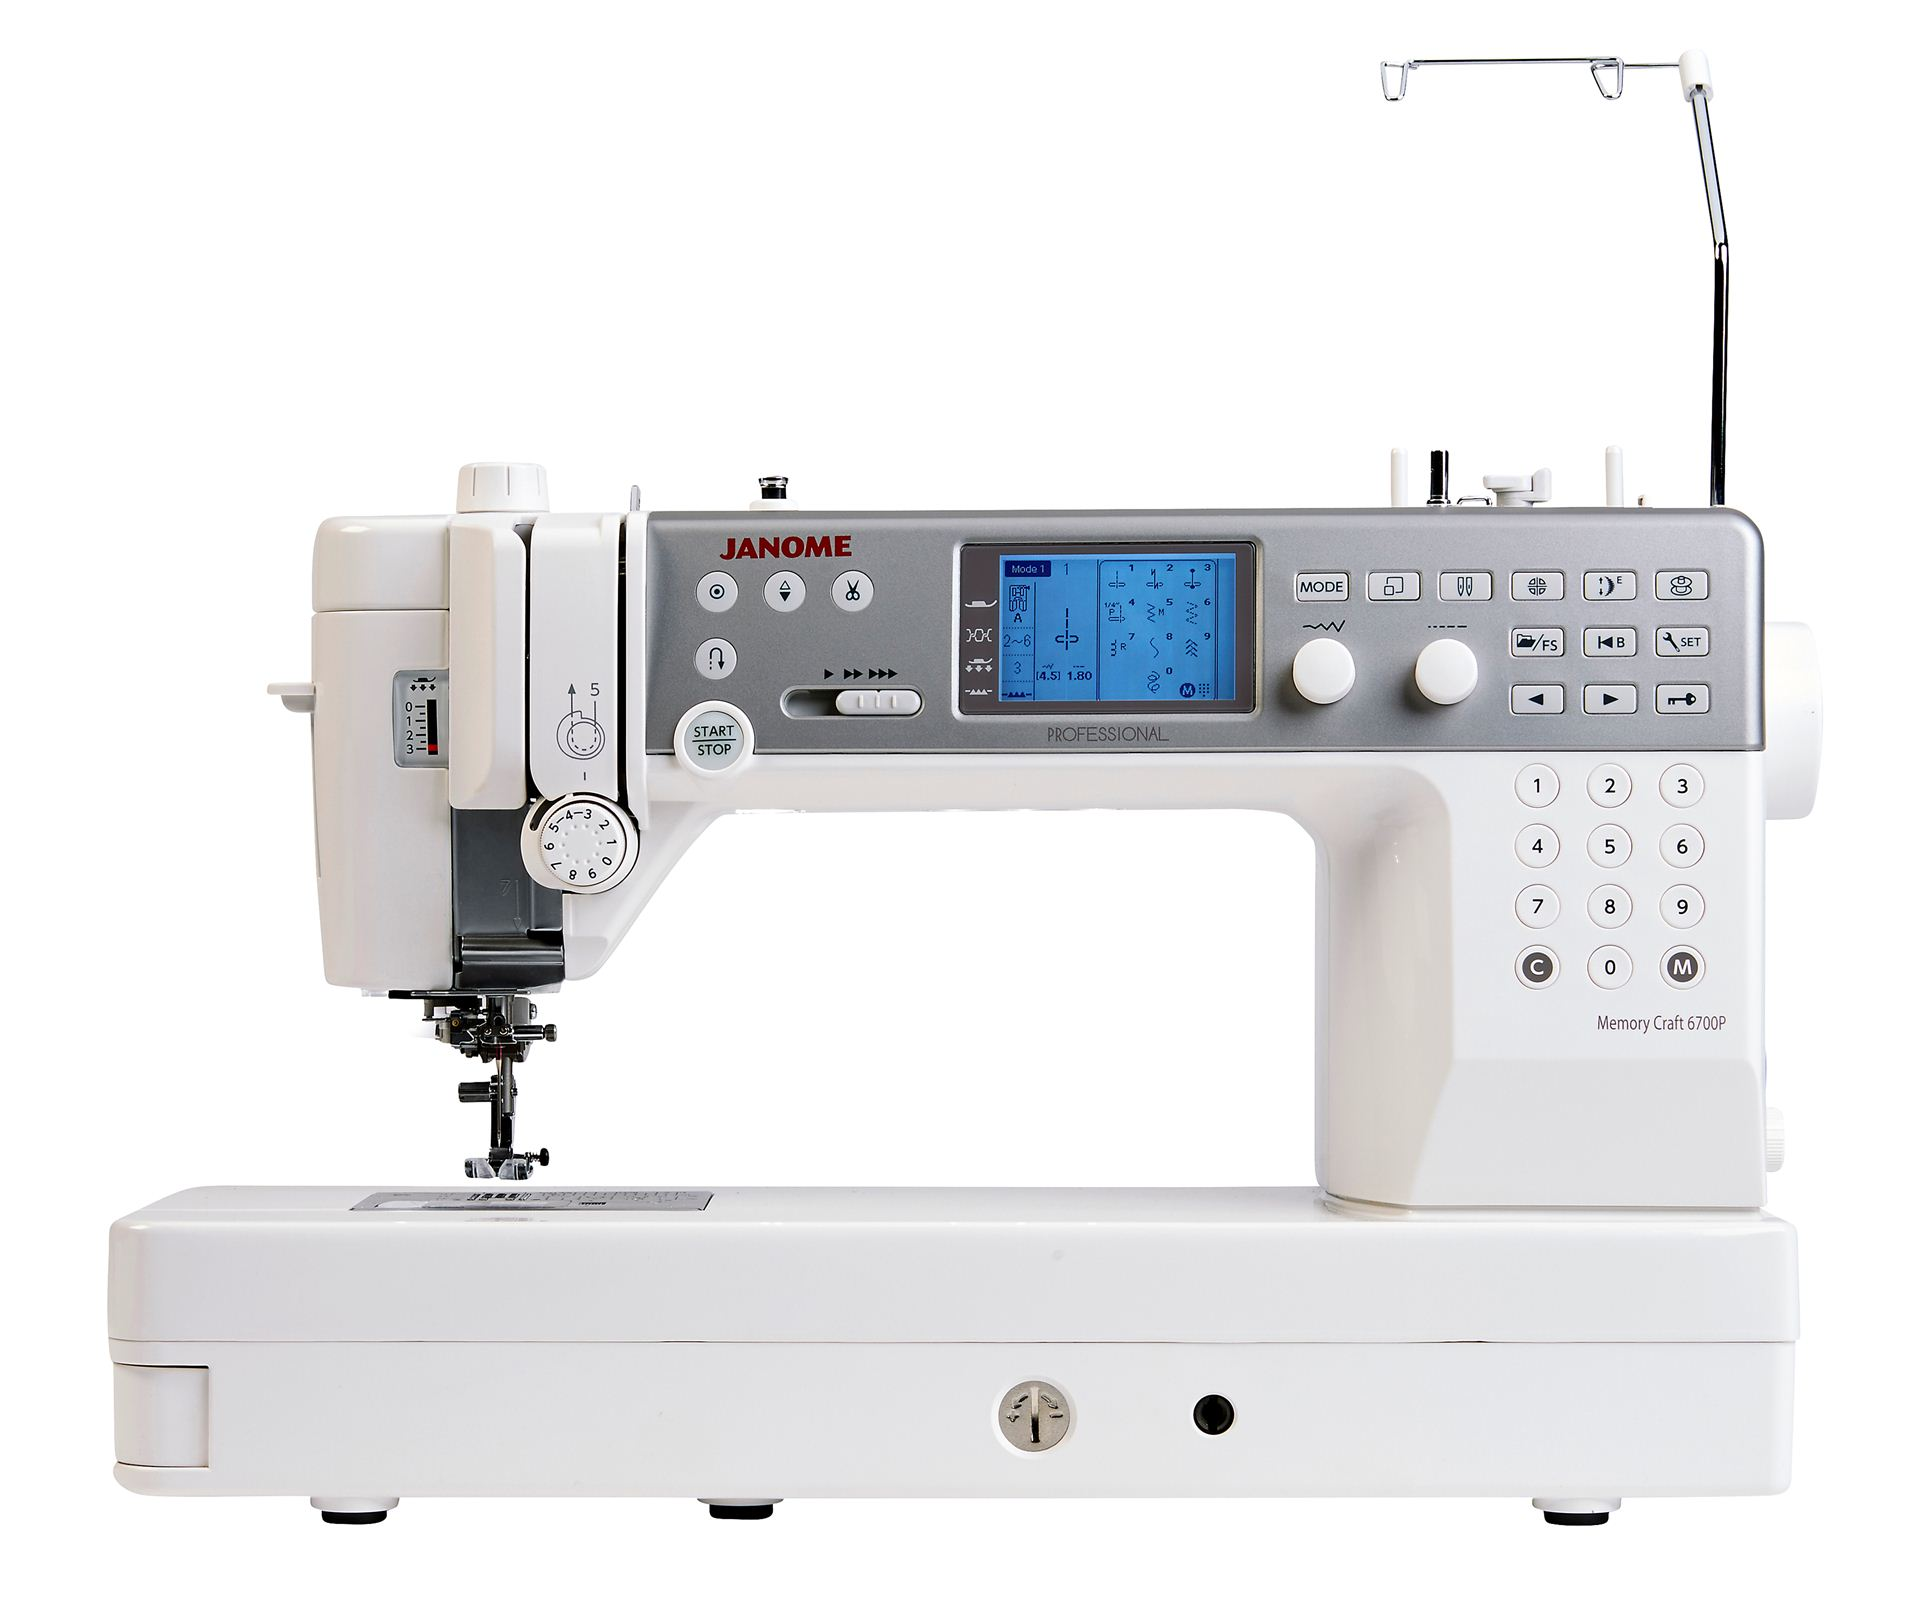 janome pdp com quilting buyjanome john sewing at main johnlewis online machine lewis quilt rsp